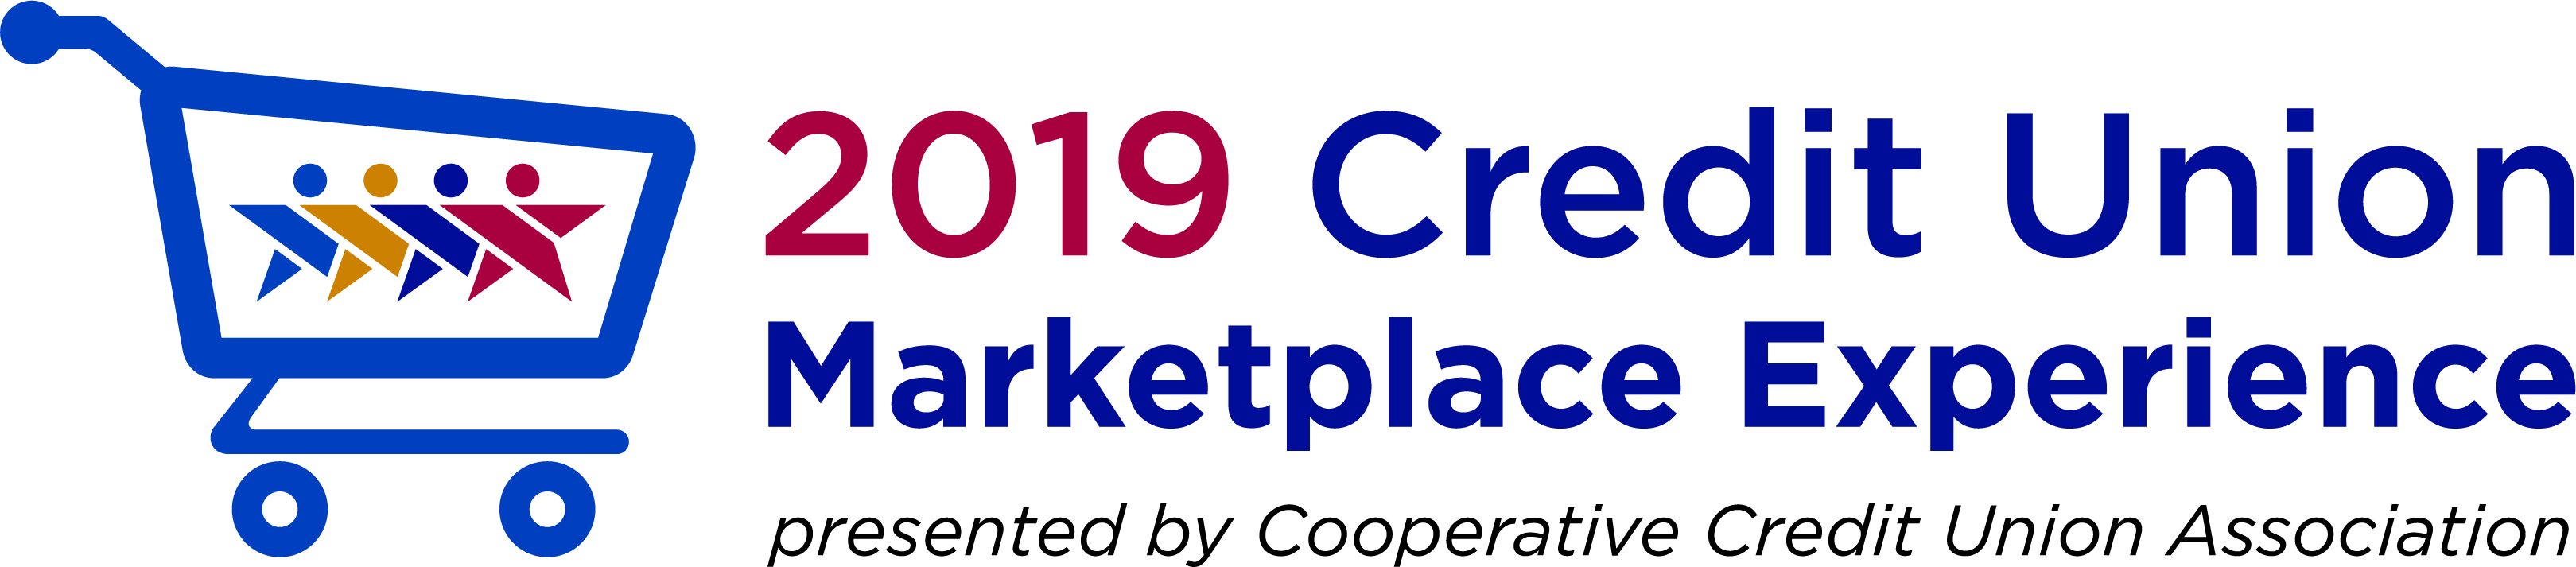 Next Generation Rewards: Evolving to Meet and Exceed Consumer Expectations - Learn how your credit union can stand out at 2019 CU Marketplace Experience thumbnail image